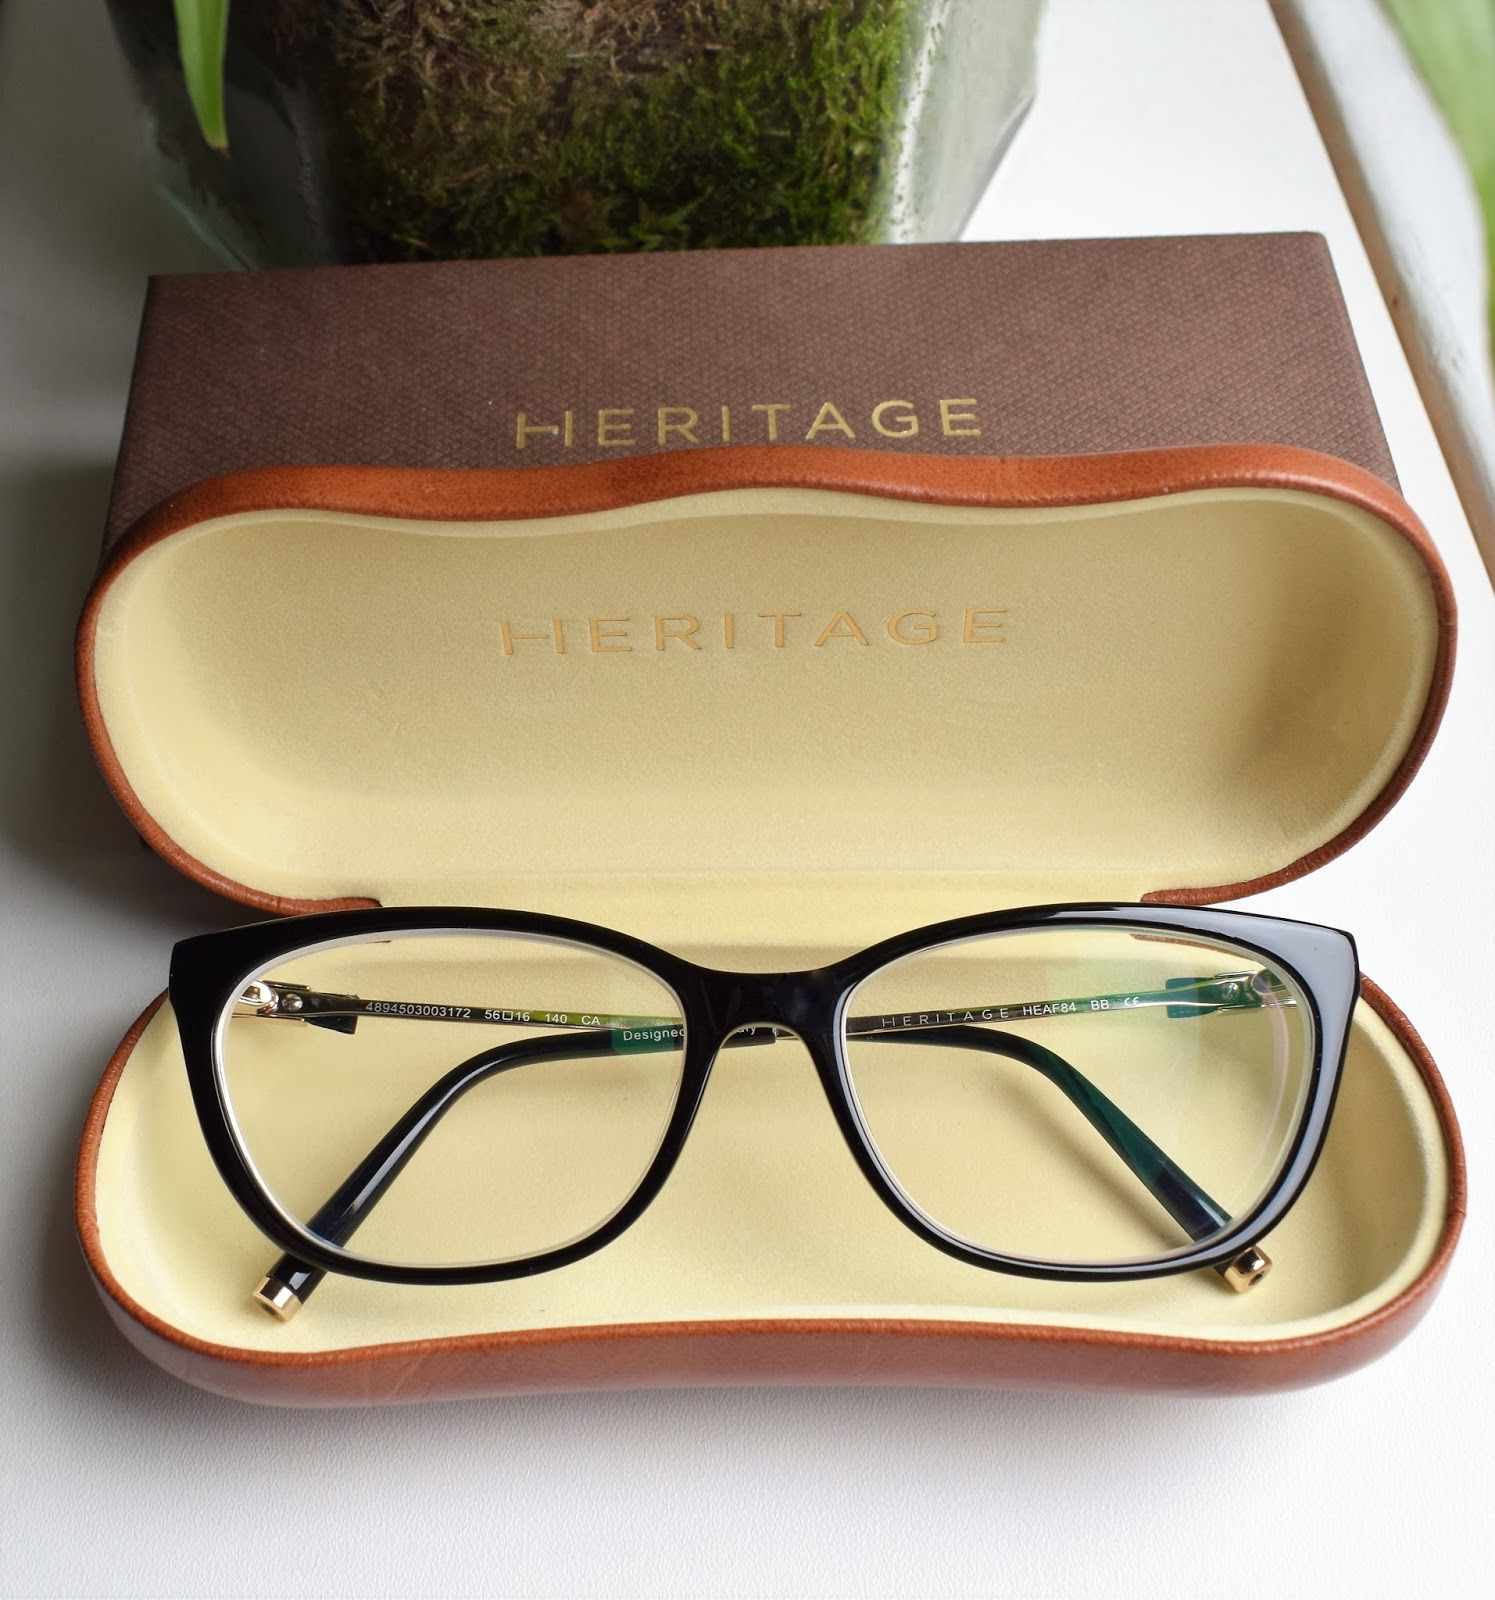 Vision Express, Heritage range glasses, exclusive brands at Vision Express, Chanel glasses dupe, latest glasses trend